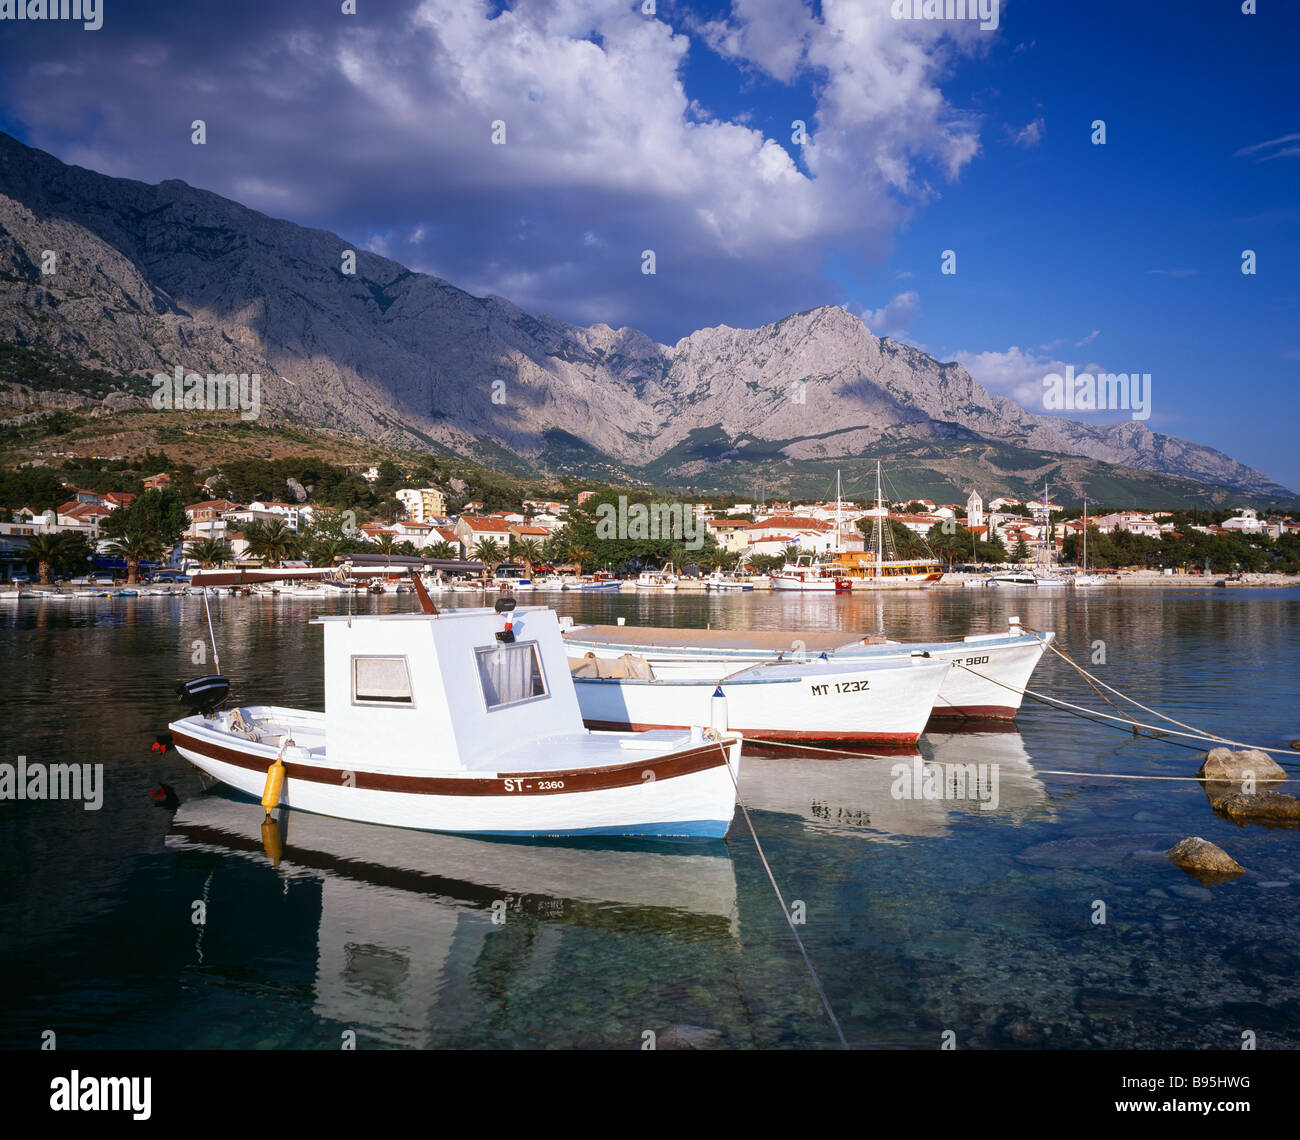 Boats in the harbour of Baska Voda on the Makarska Riviera, Dalmatia, Croatia. - Stock Image